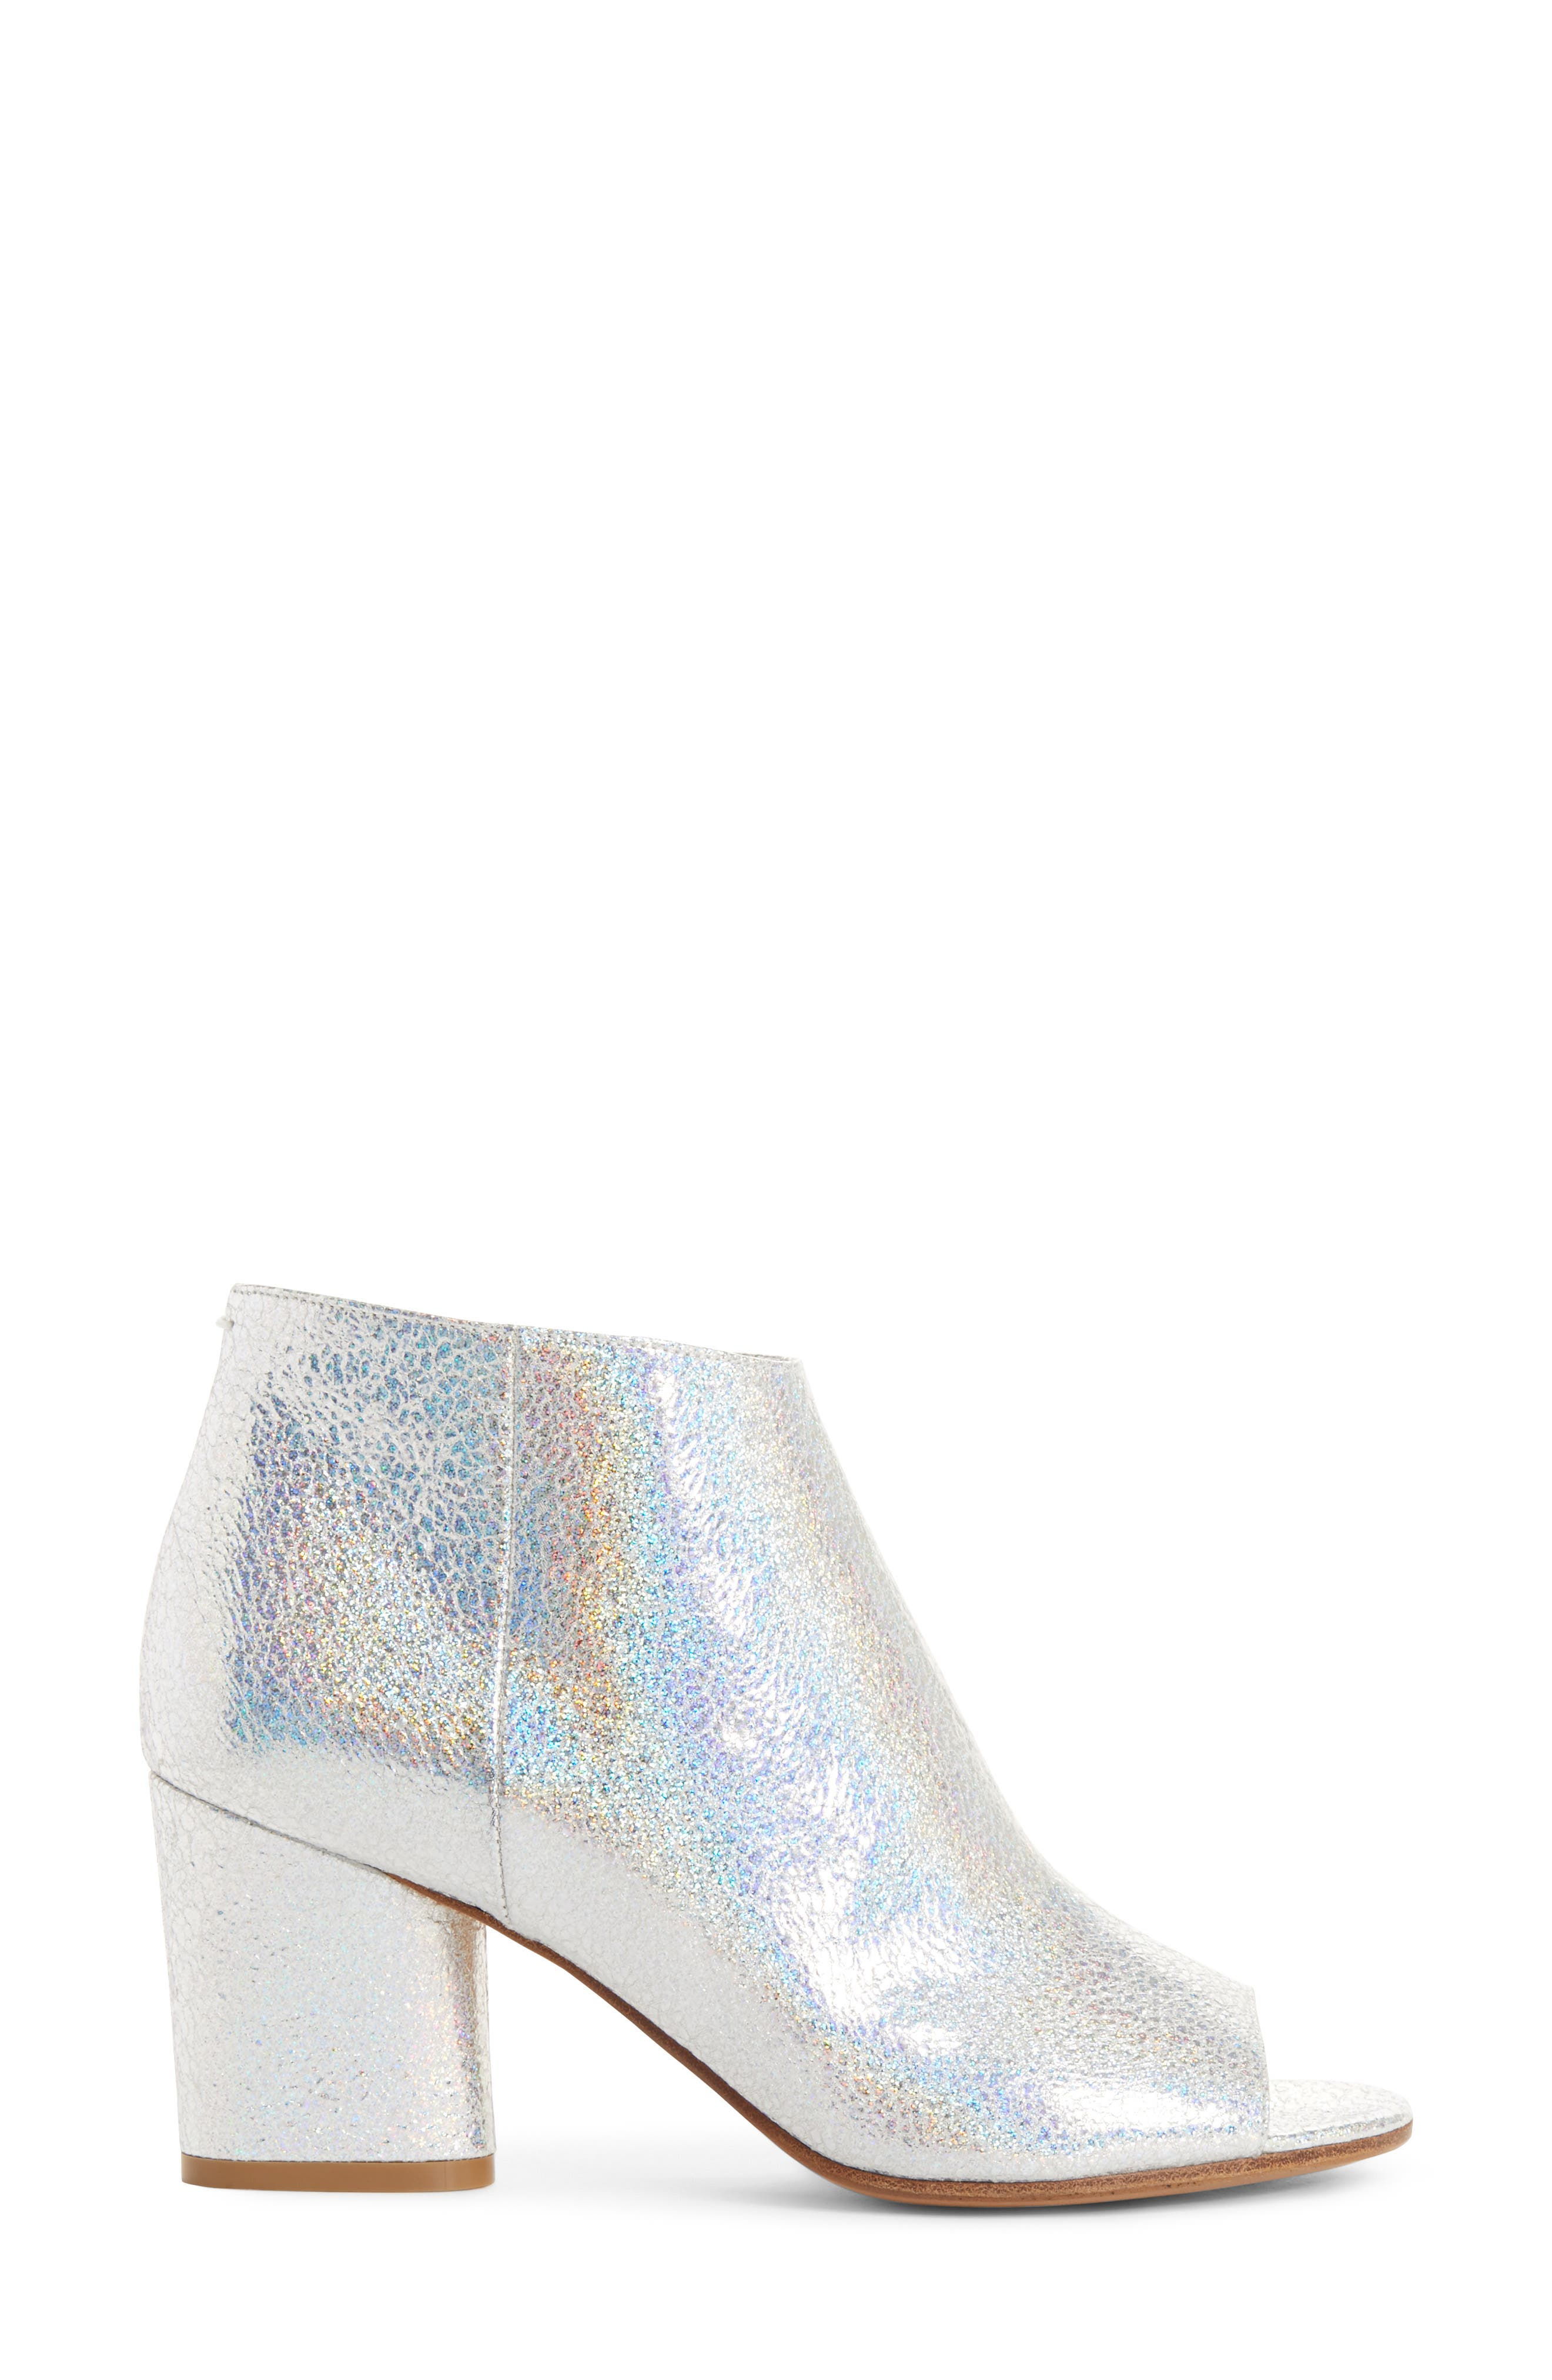 Metallic Open Toe Ankle Boot,                             Alternate thumbnail 3, color,                             040